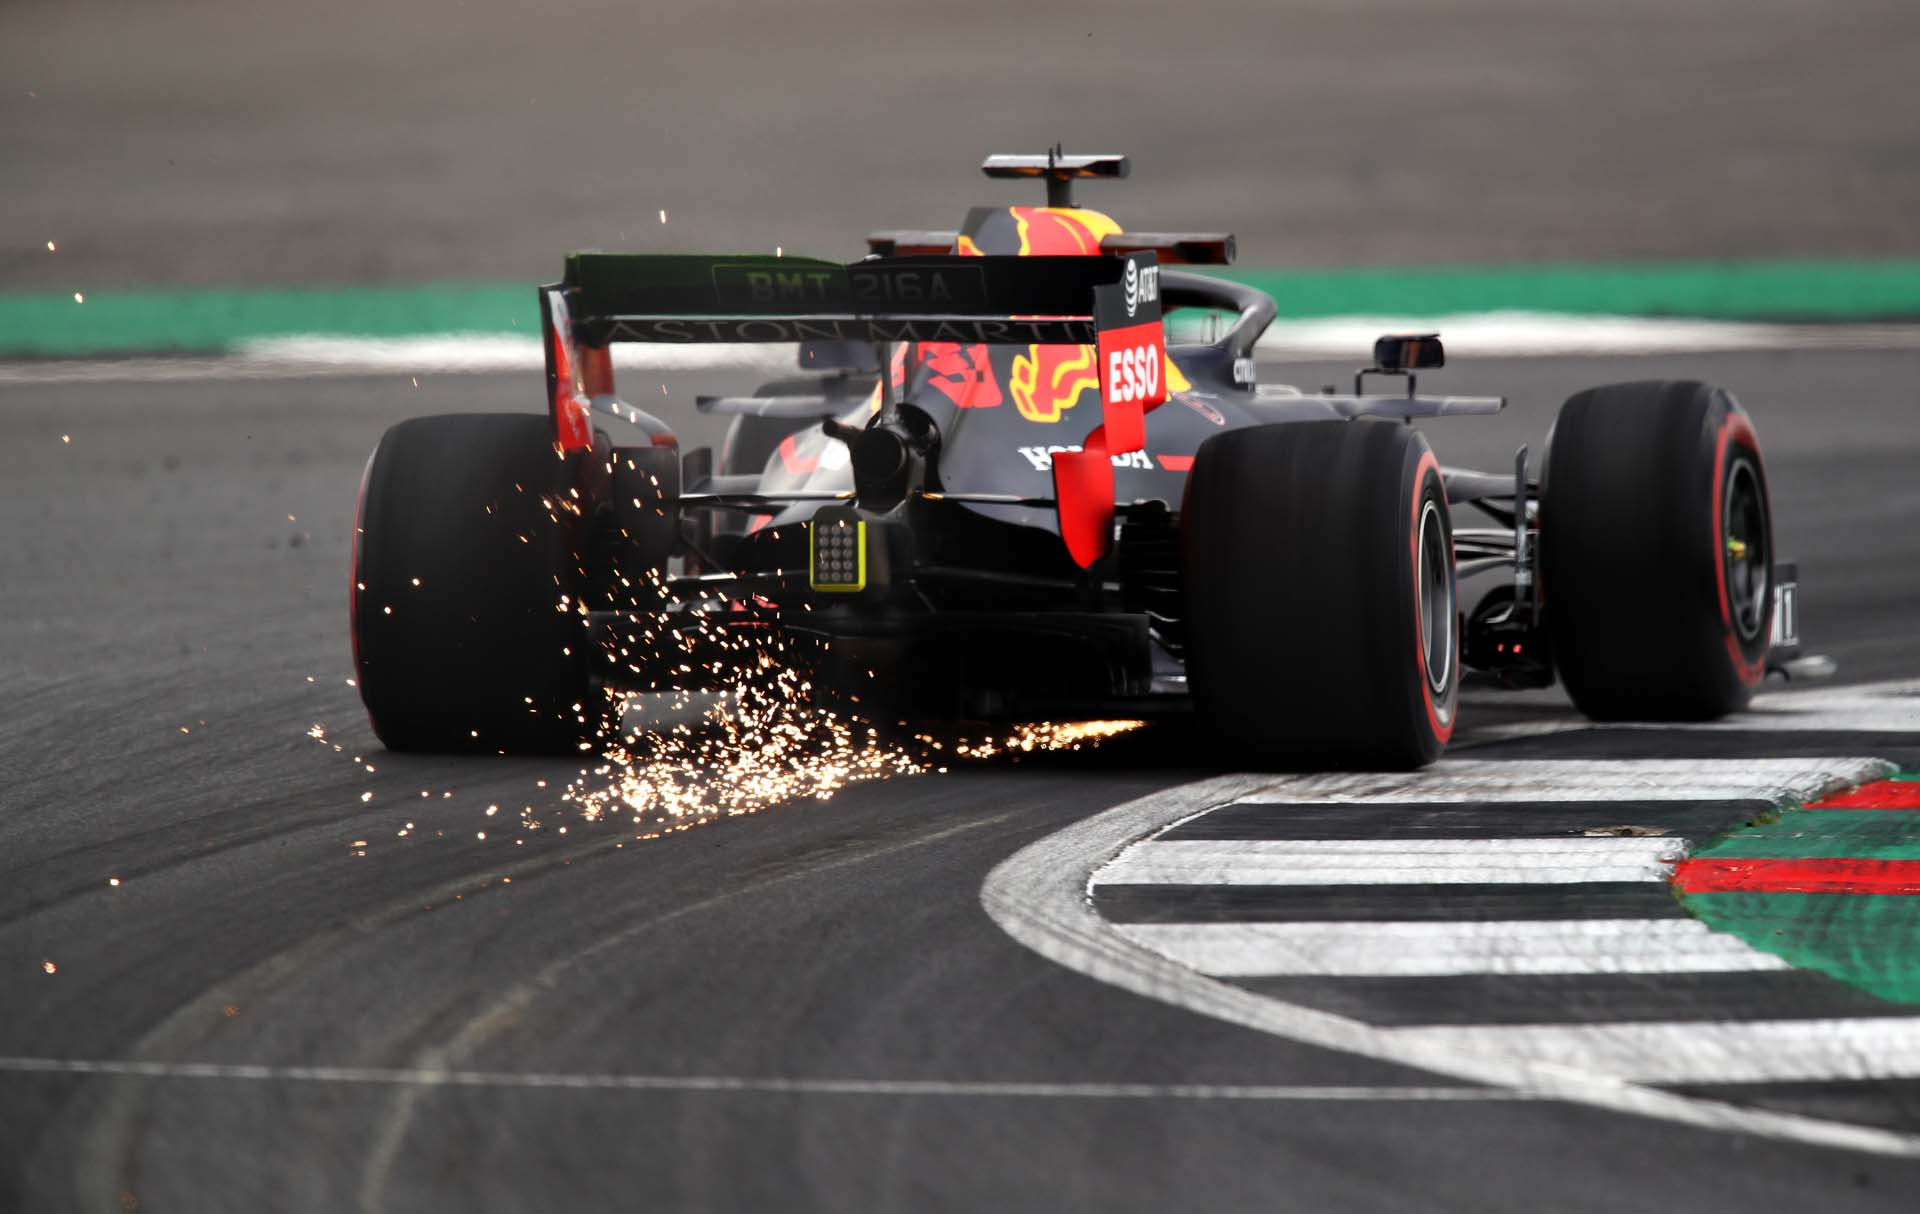 NORTHAMPTON, ENGLAND - JULY 12: Sparks fly behind Max Verstappen of the Netherlands driving the (33) Aston Martin Red Bull Racing RB15 on track during practice for the F1 Grand Prix of Great Britain at Silverstone on July 12, 2019 in Northampton, England. (Photo by Bryn Lennon/Getty Images) // Getty Images / Red Bull Content Pool  // AP-1ZX37MVE51W11 // Usage for editorial use only // Please go to www.redbullcontentpool.com for further information. //